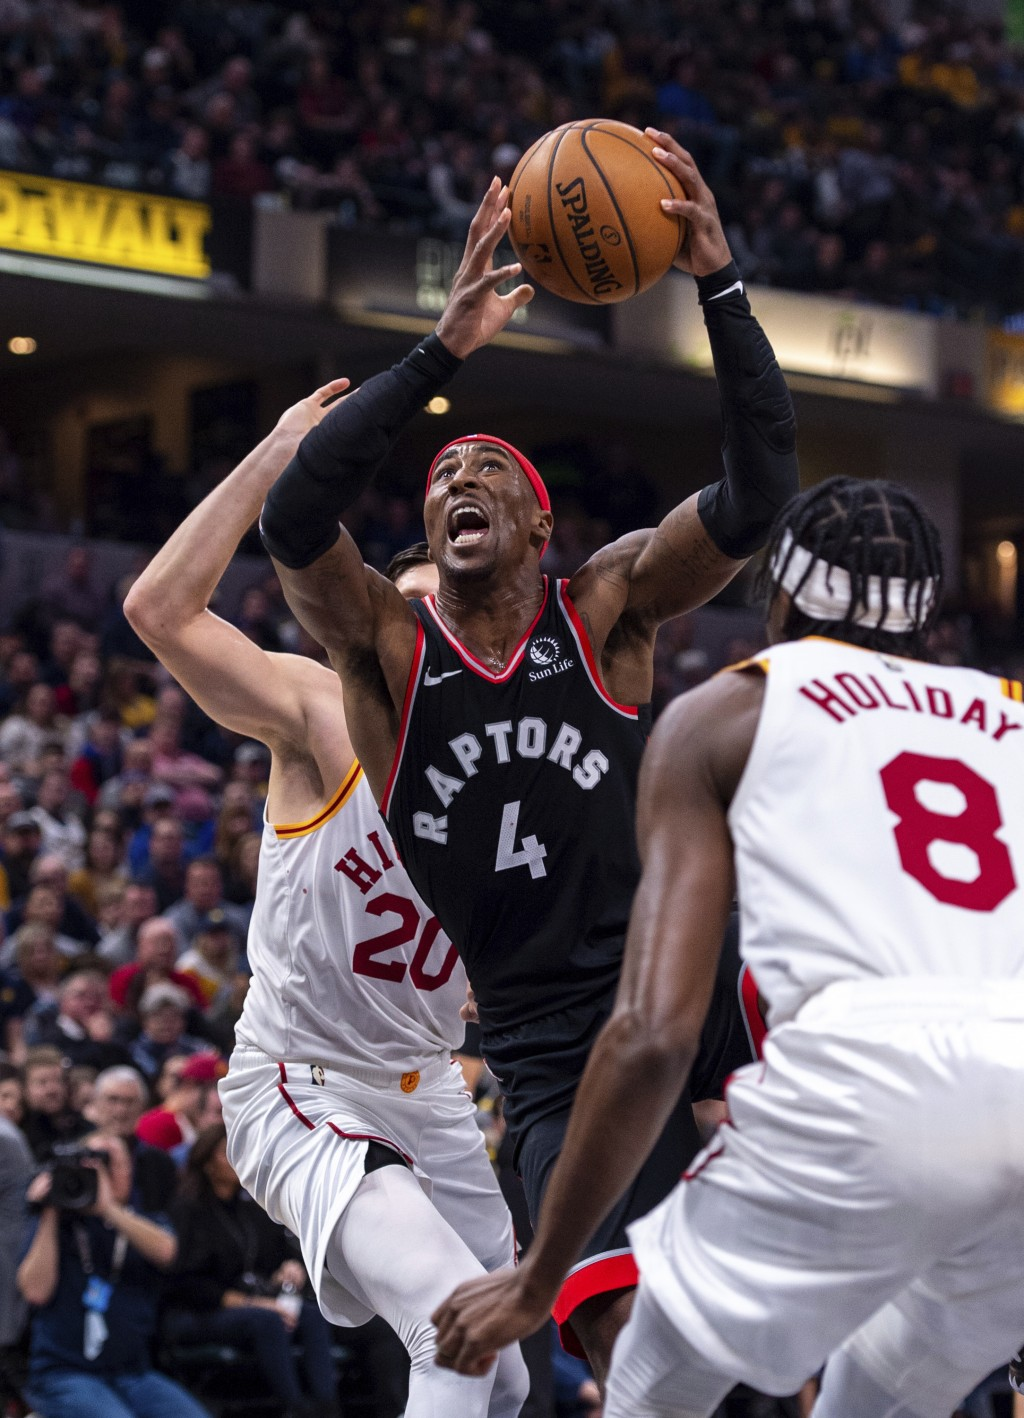 Toronto Raptors forward Rondae Hollis-Jefferson (4) shoots the ball during an NBA basketball game against the Indiana Pacers, Monday, Dec. 23, 2019, i...